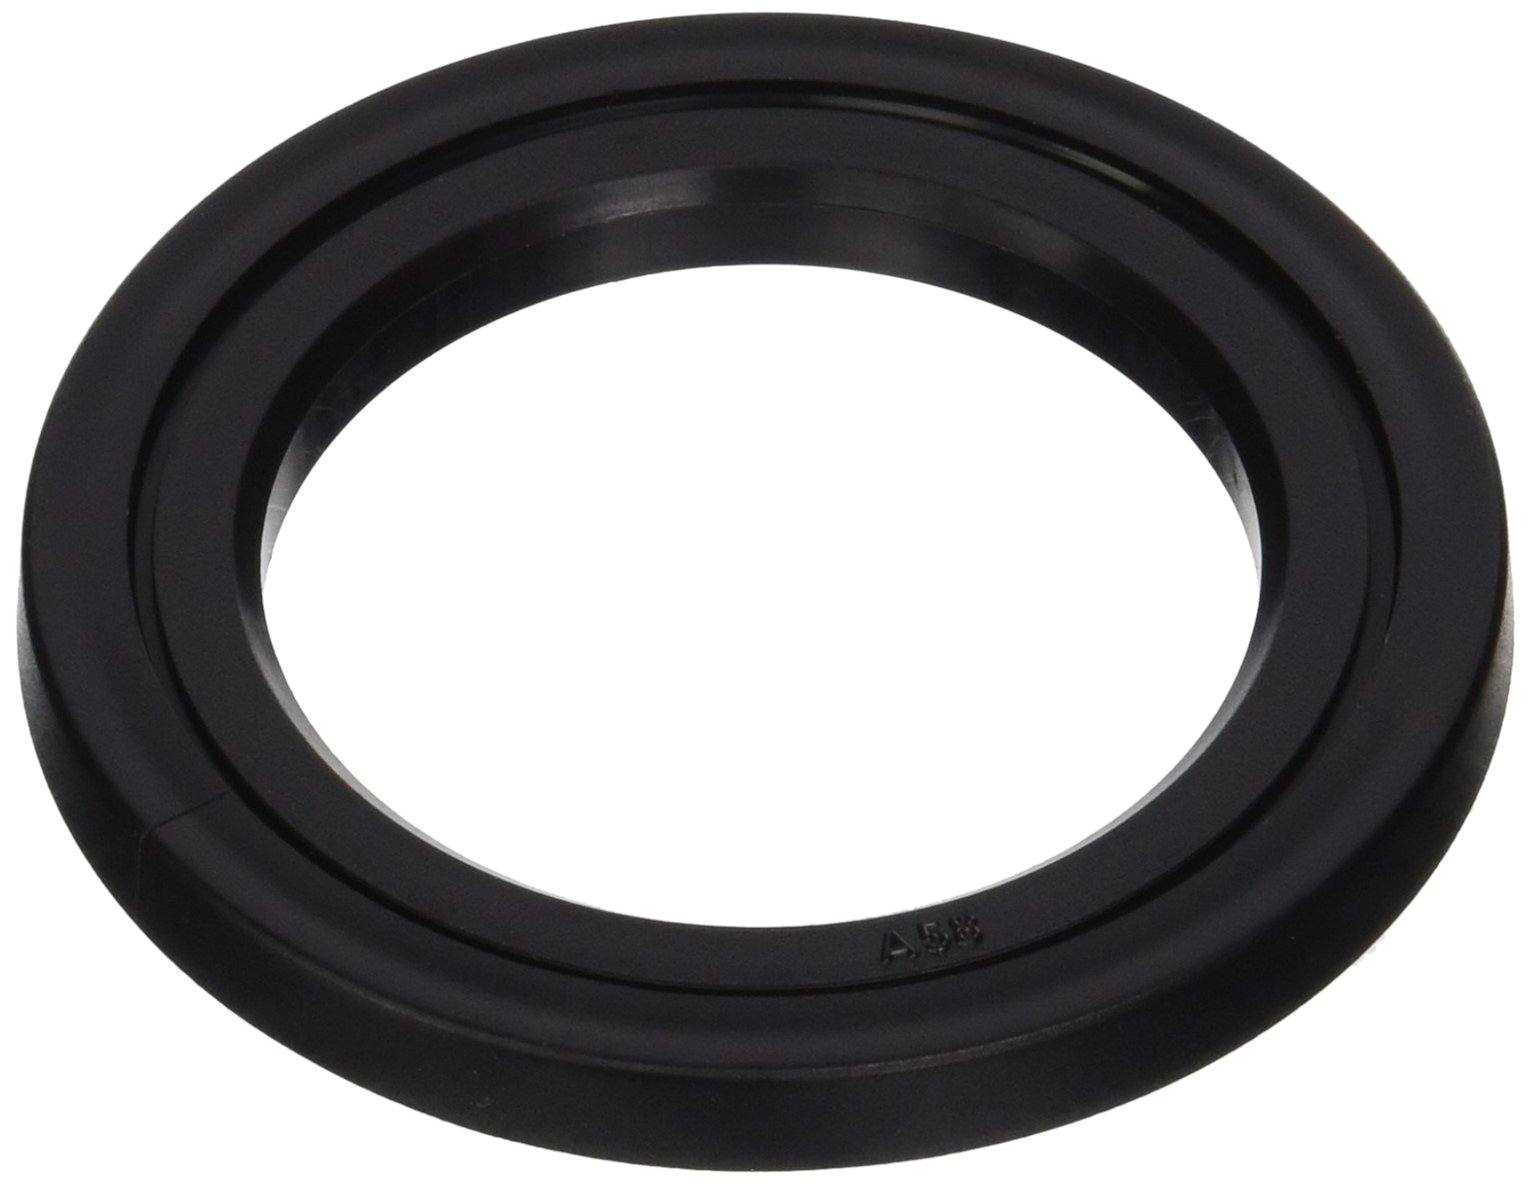 Ewa-Marine EM C-A58 Ring Set with Lens Port Adapter (Clear)